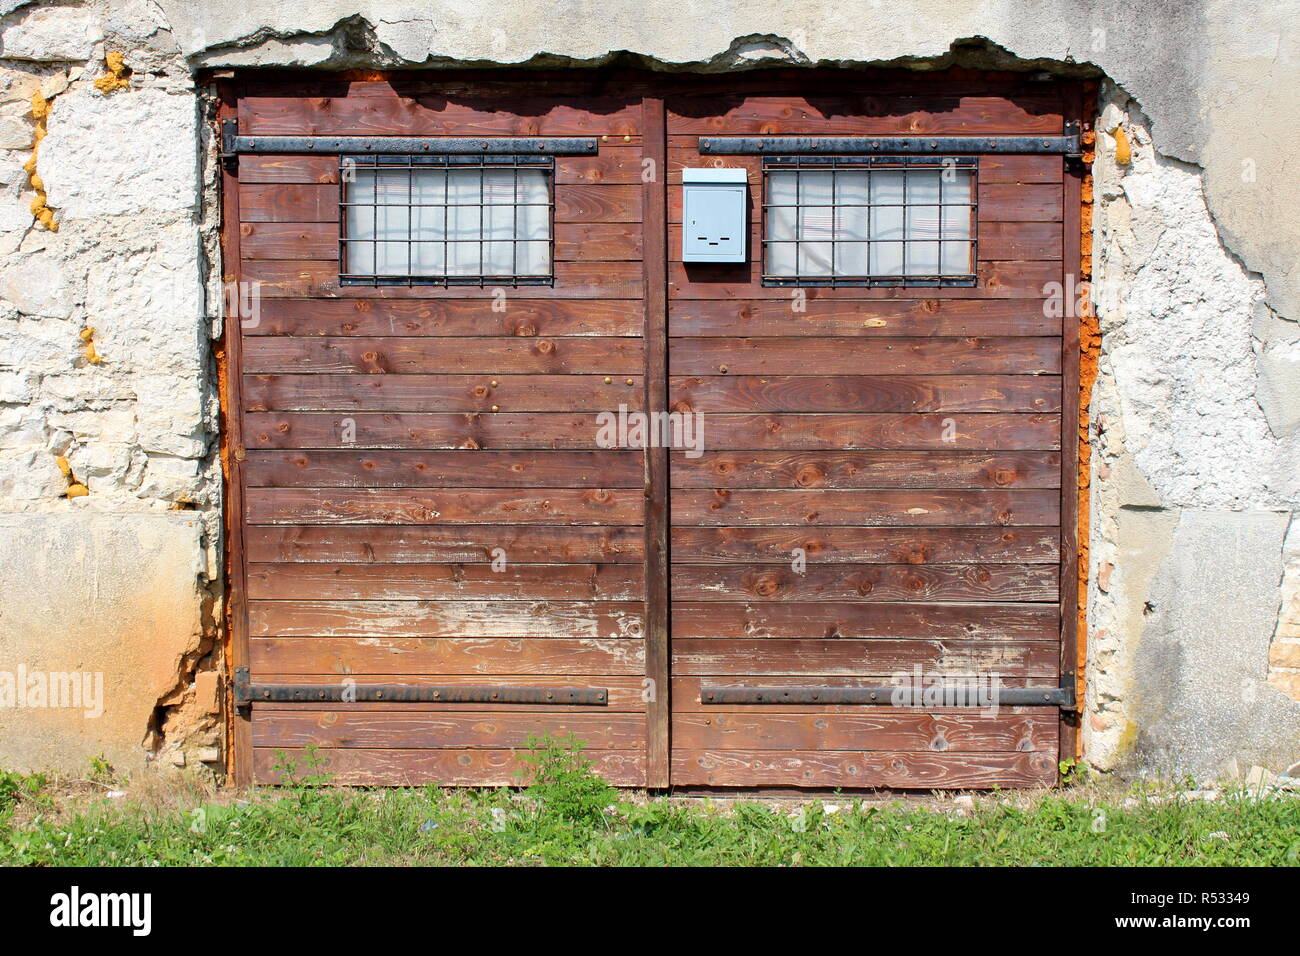 Garage doors made of small wooden boards with faded brown color and two small windows protected